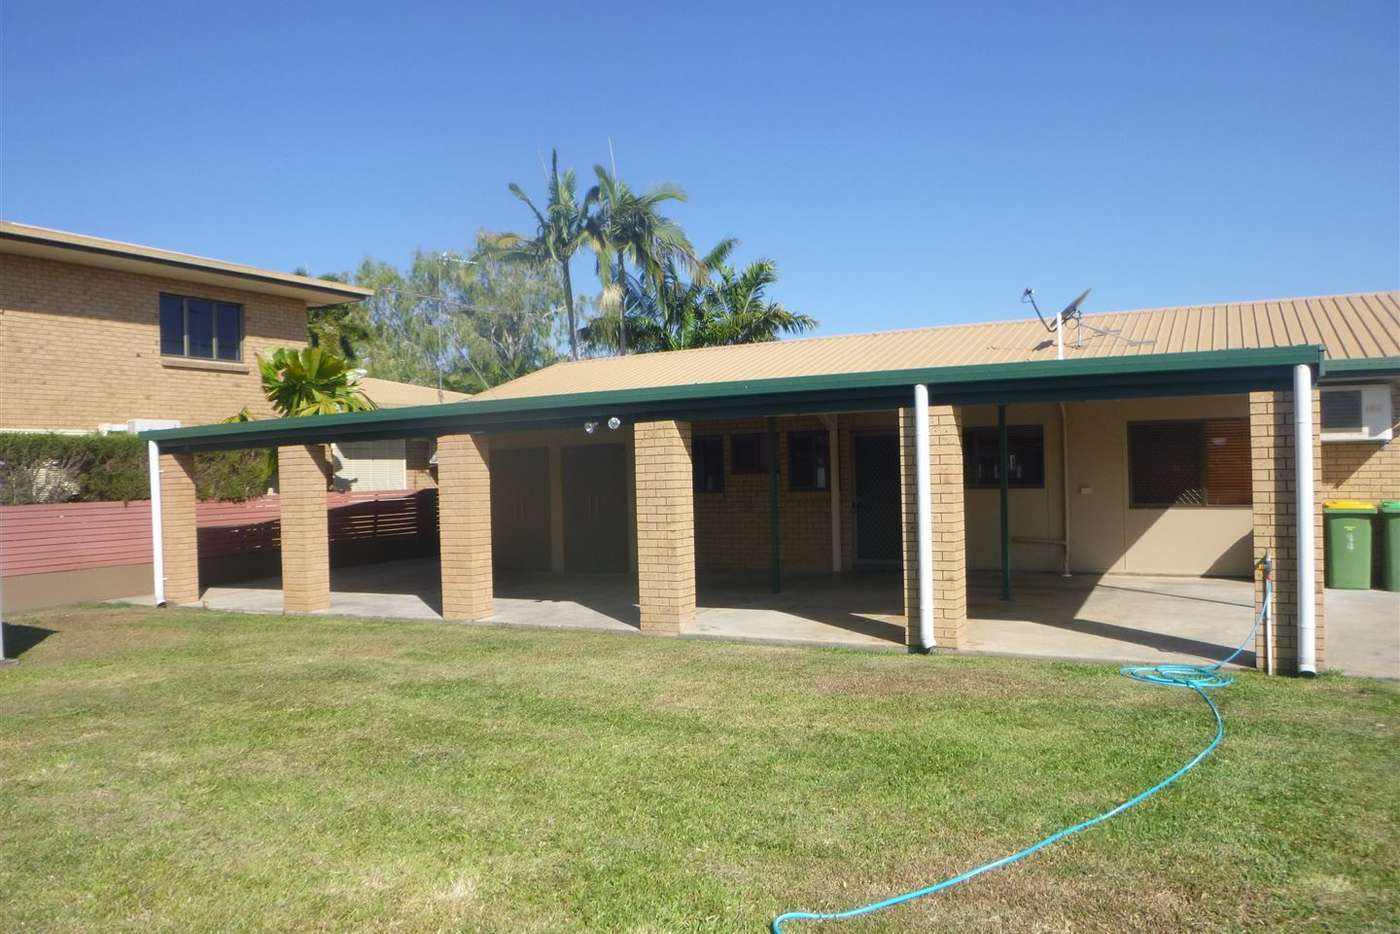 Main view of Homely house listing, 1 Strathdee Court, Ayr QLD 4807